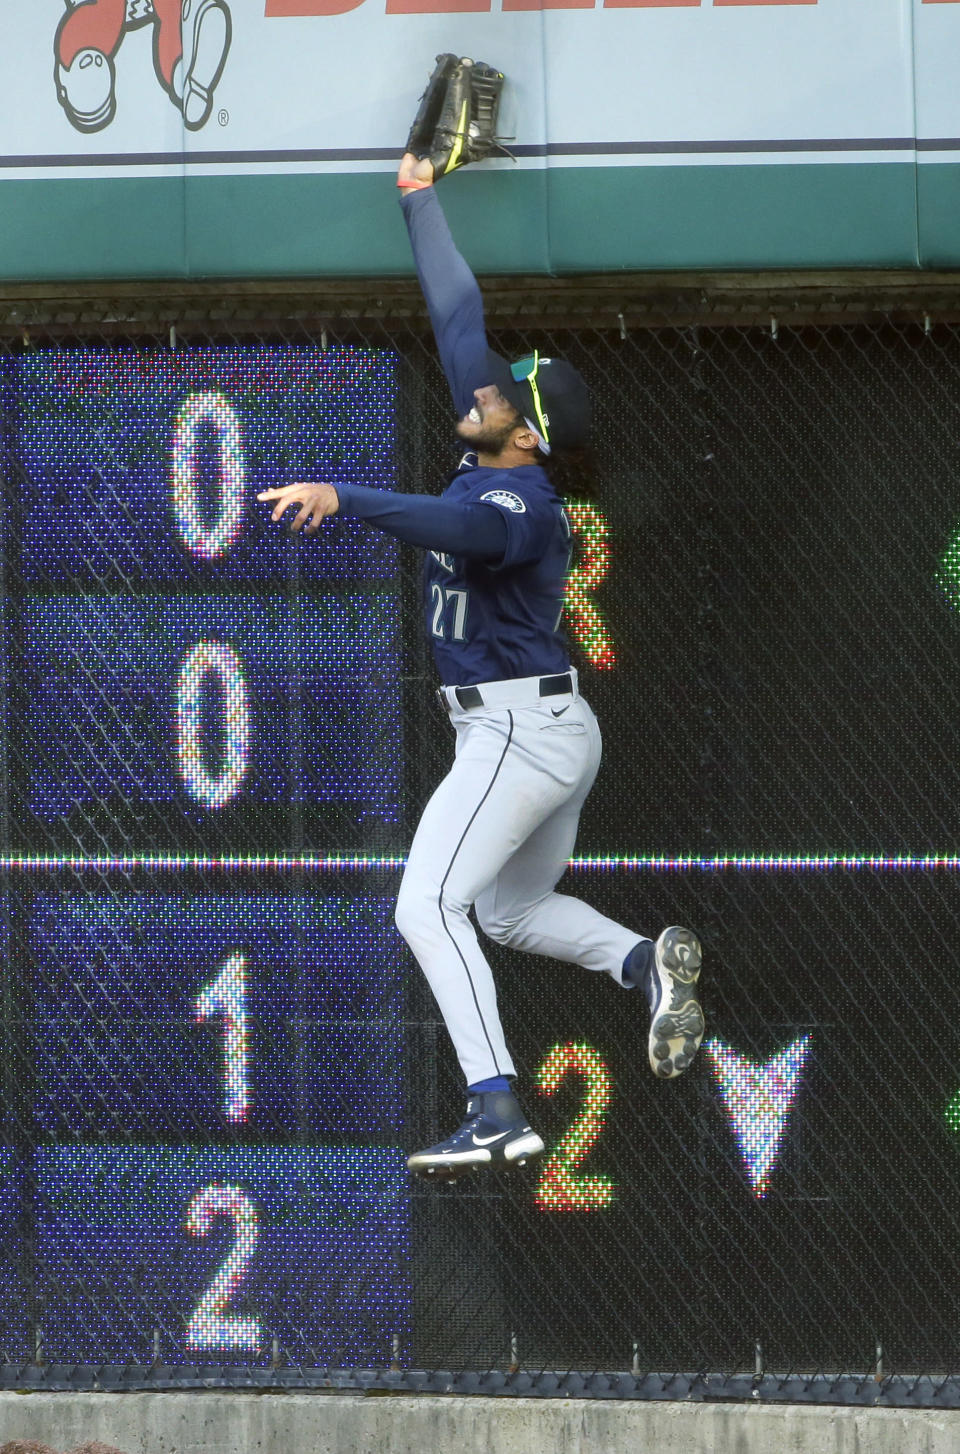 Seattle Mariners right fielder Dillon Thomas goes up against the scoreboard to catch a fly ball hit by Detroit Tigers' Niko Goodrum during the second inning of a baseball game Wednesday, June 9, 2021, in Detroit. (AP Photo/Duane Burleson)